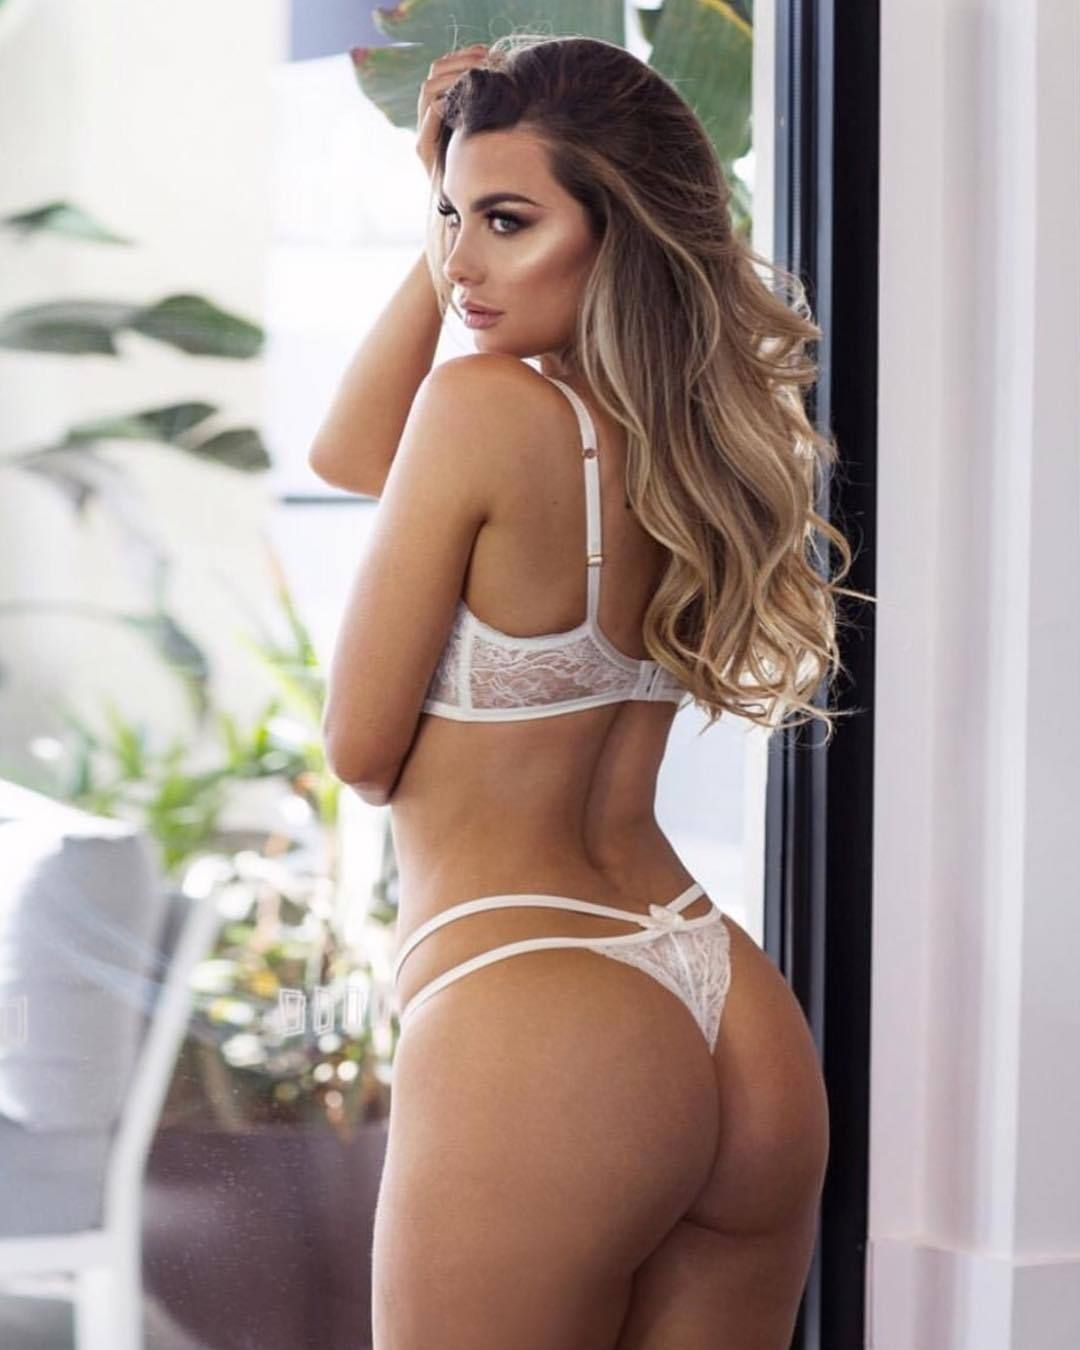 Emily sears sexy nude (66 photo), Is a cute Celebrity foto